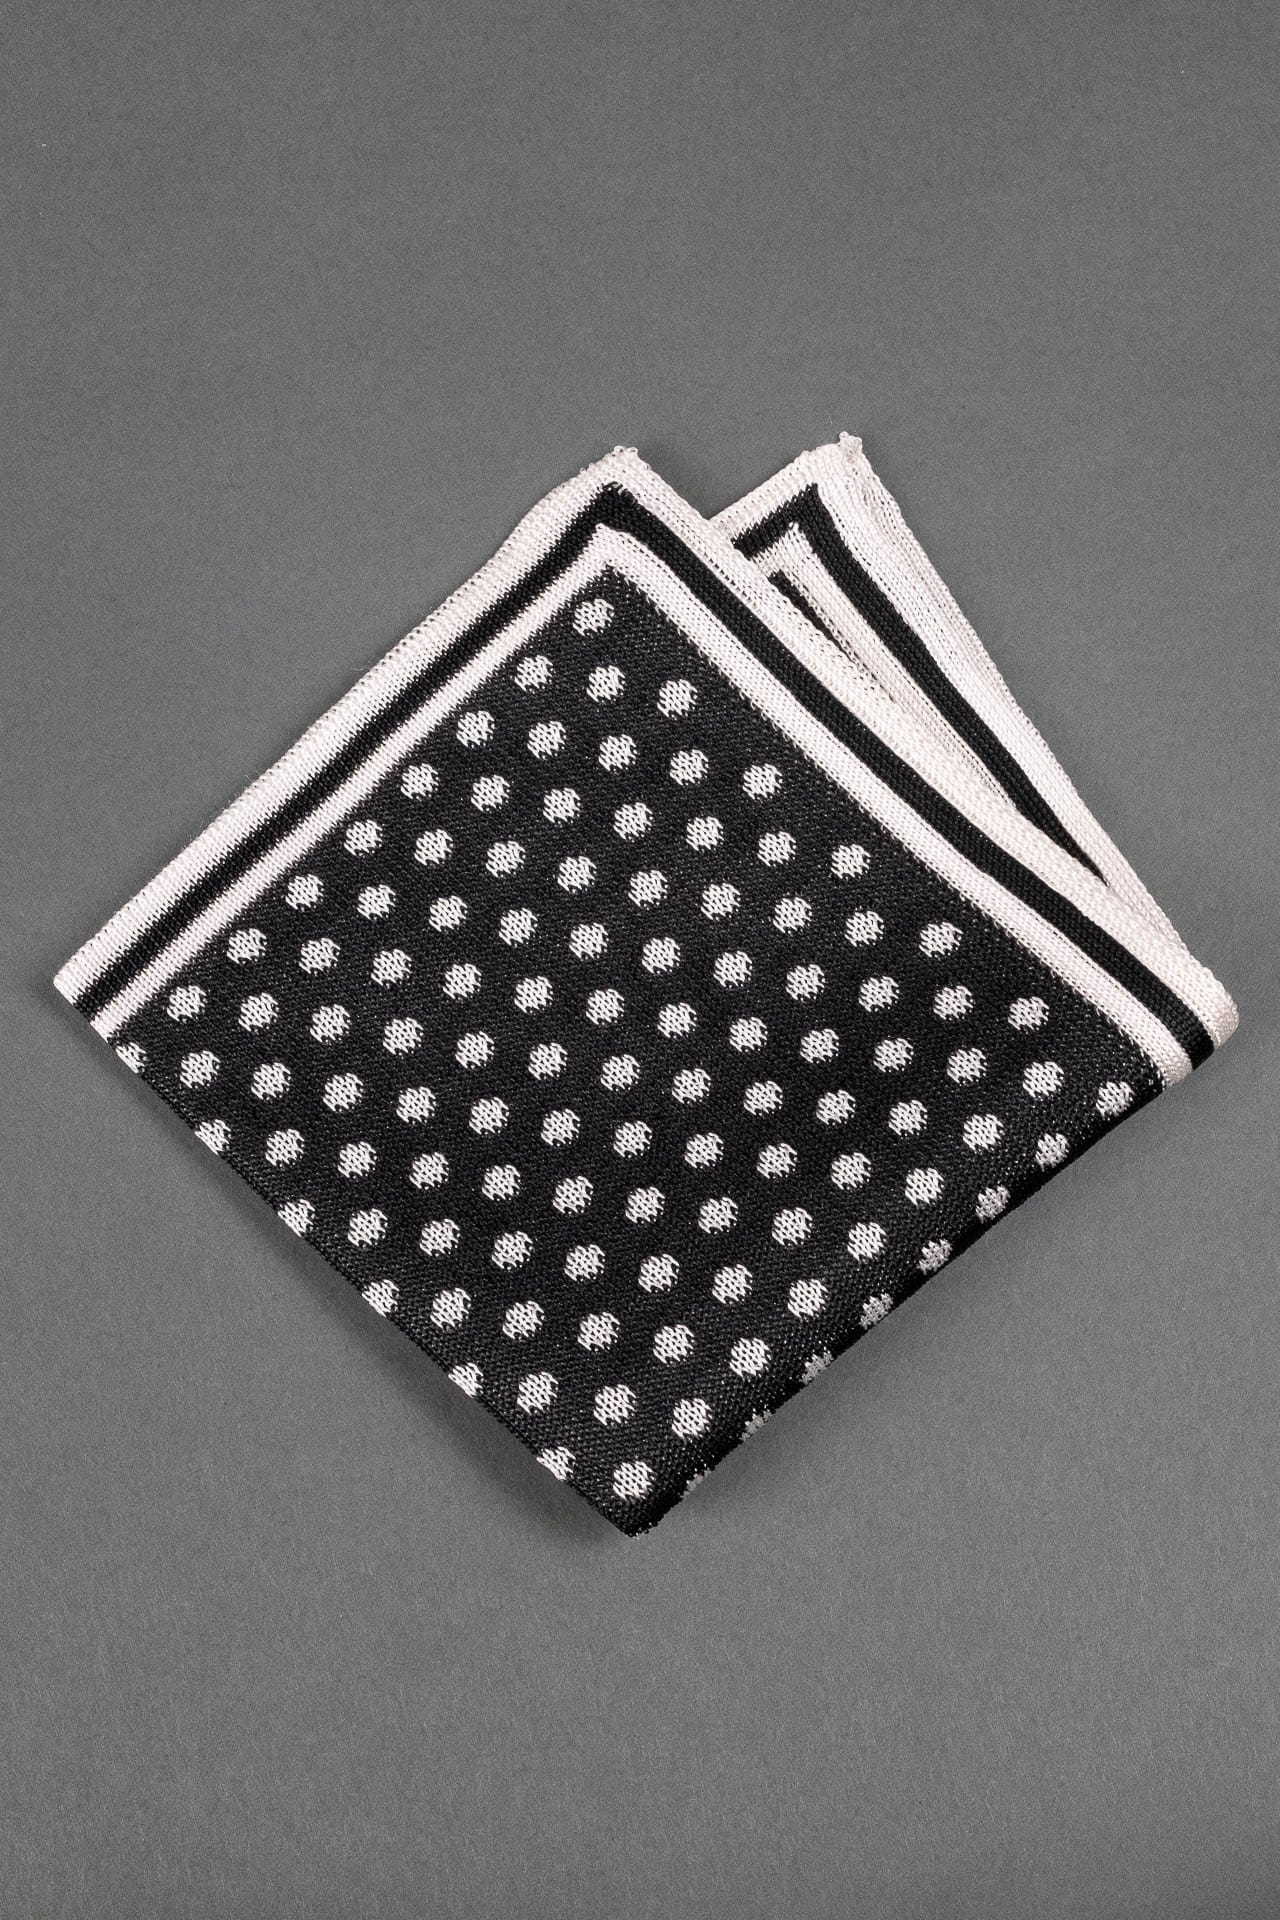 black-and-white-dots-silk-knitted-pocket-square-with-white frame-made-in-italy